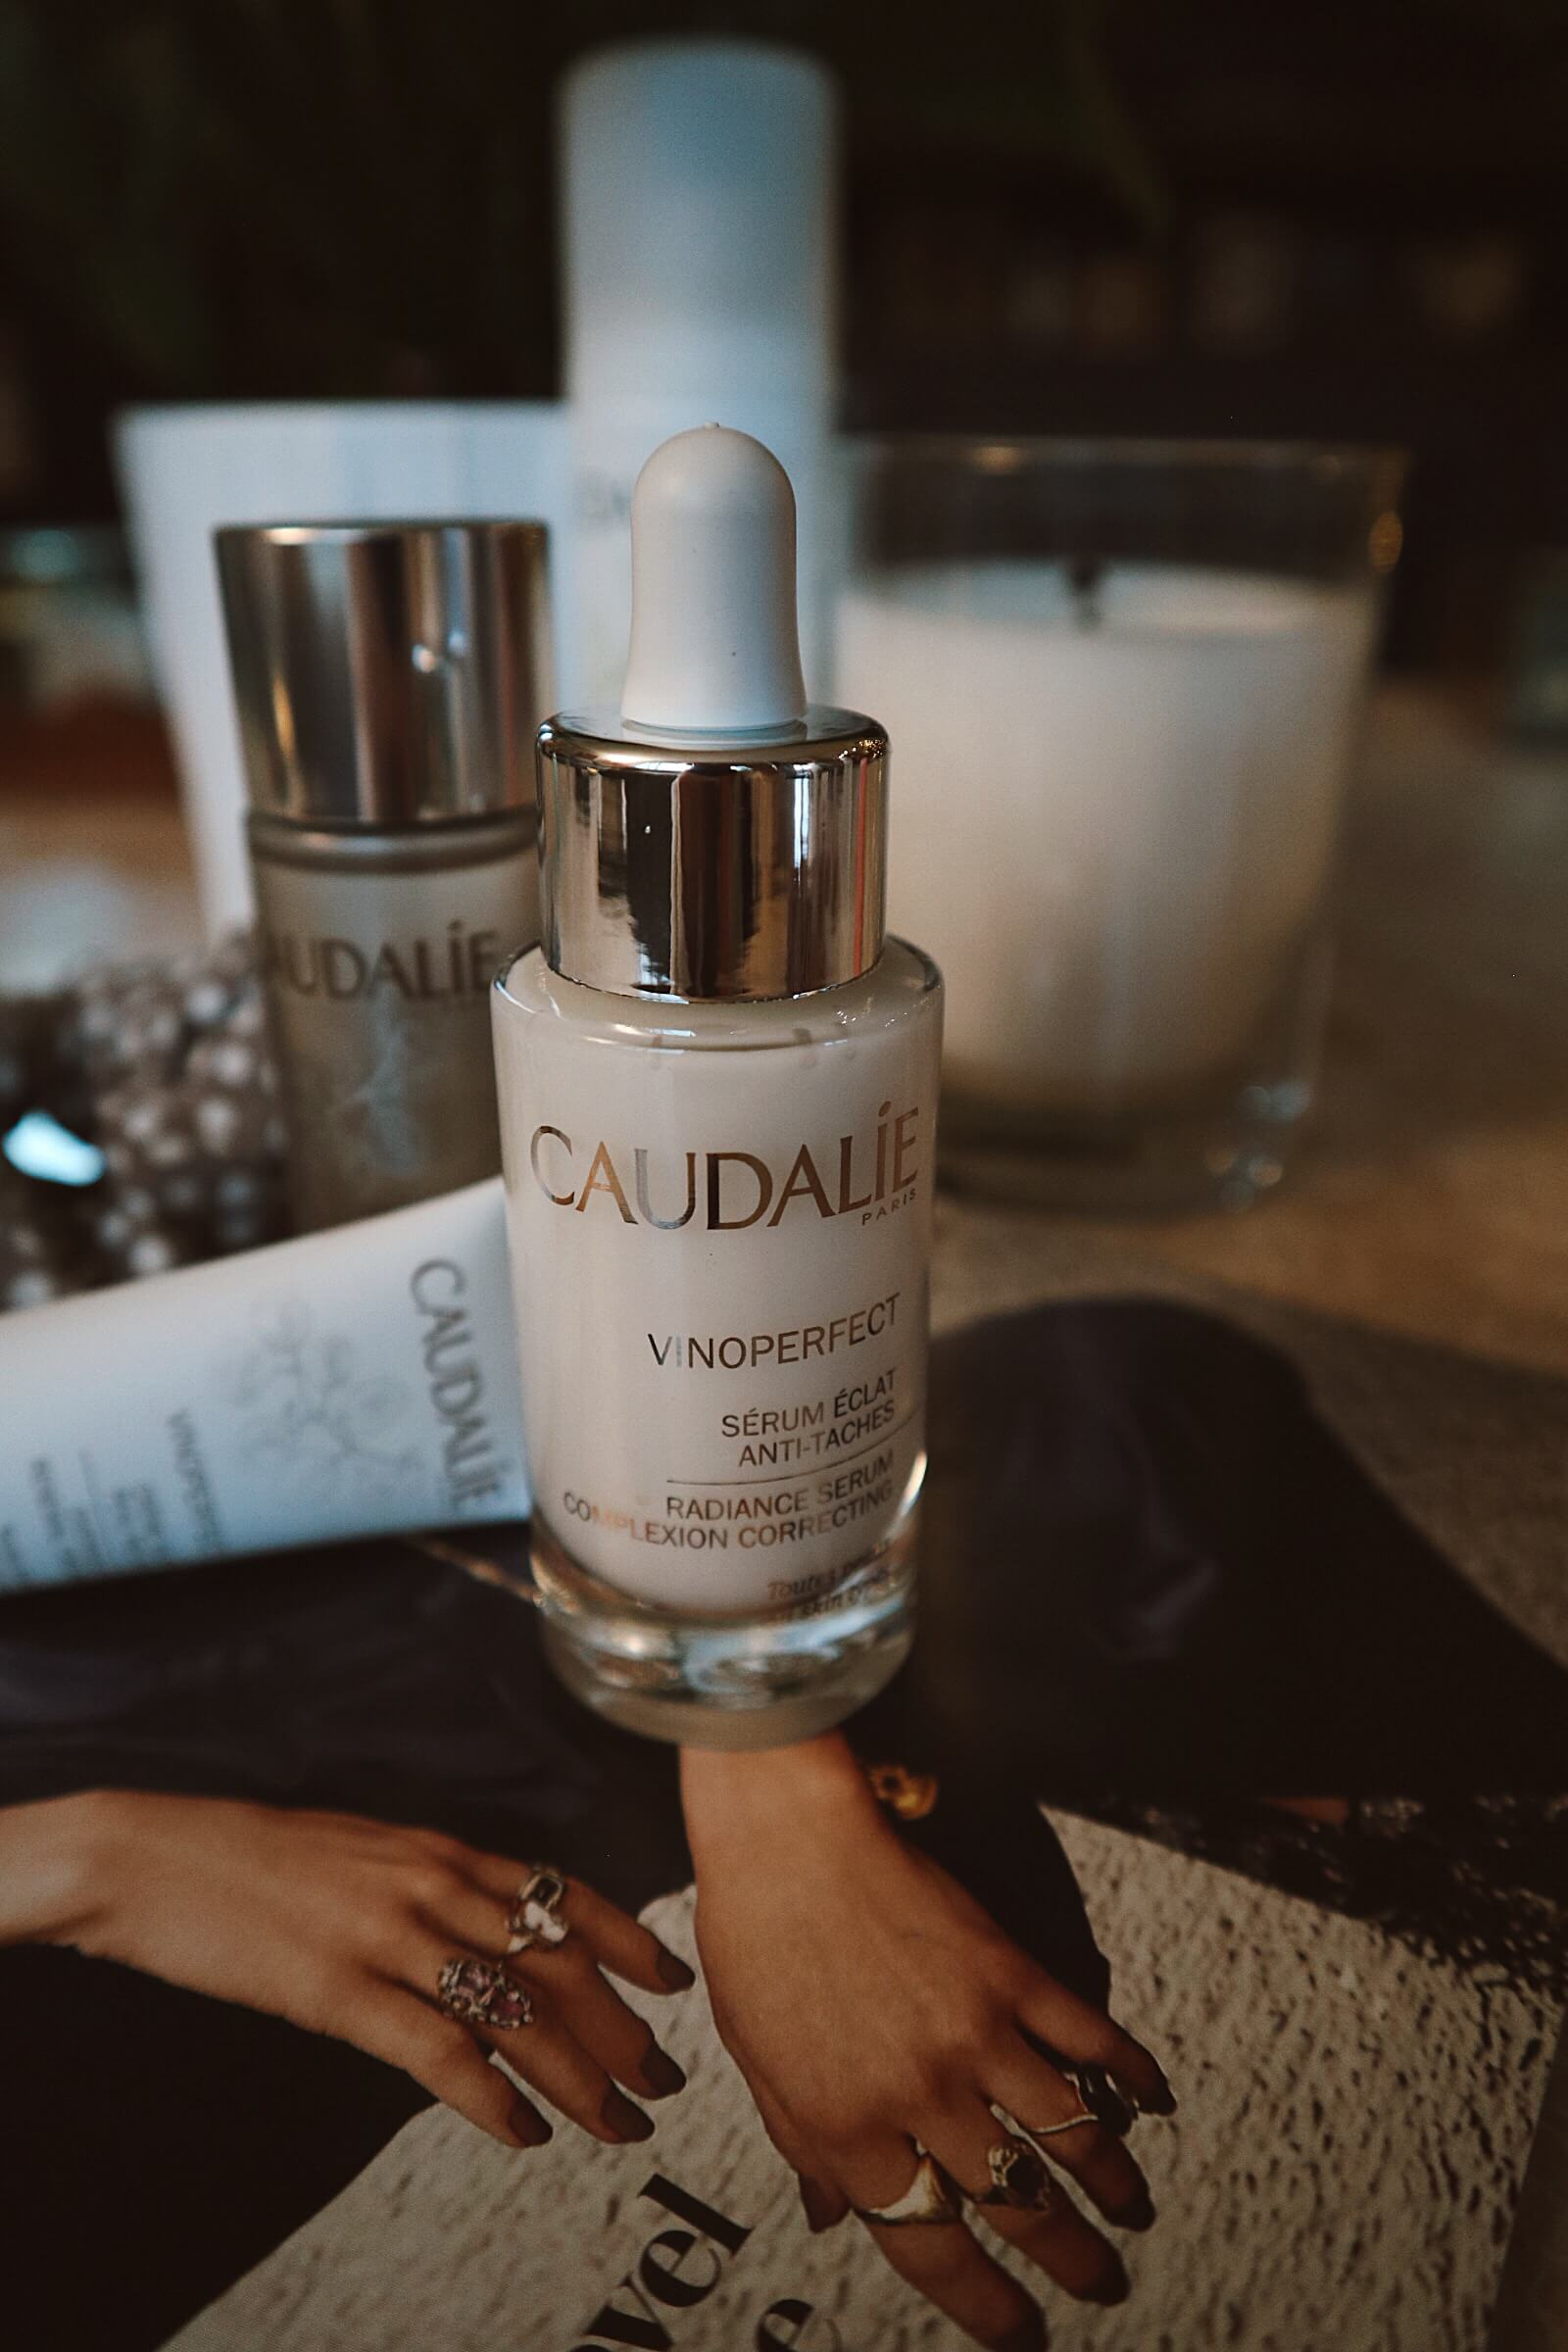 My Miracle Dark Spot Serum. The Caudale Radiance Serum is what dreams are made of. This is my #1 skincare must have.